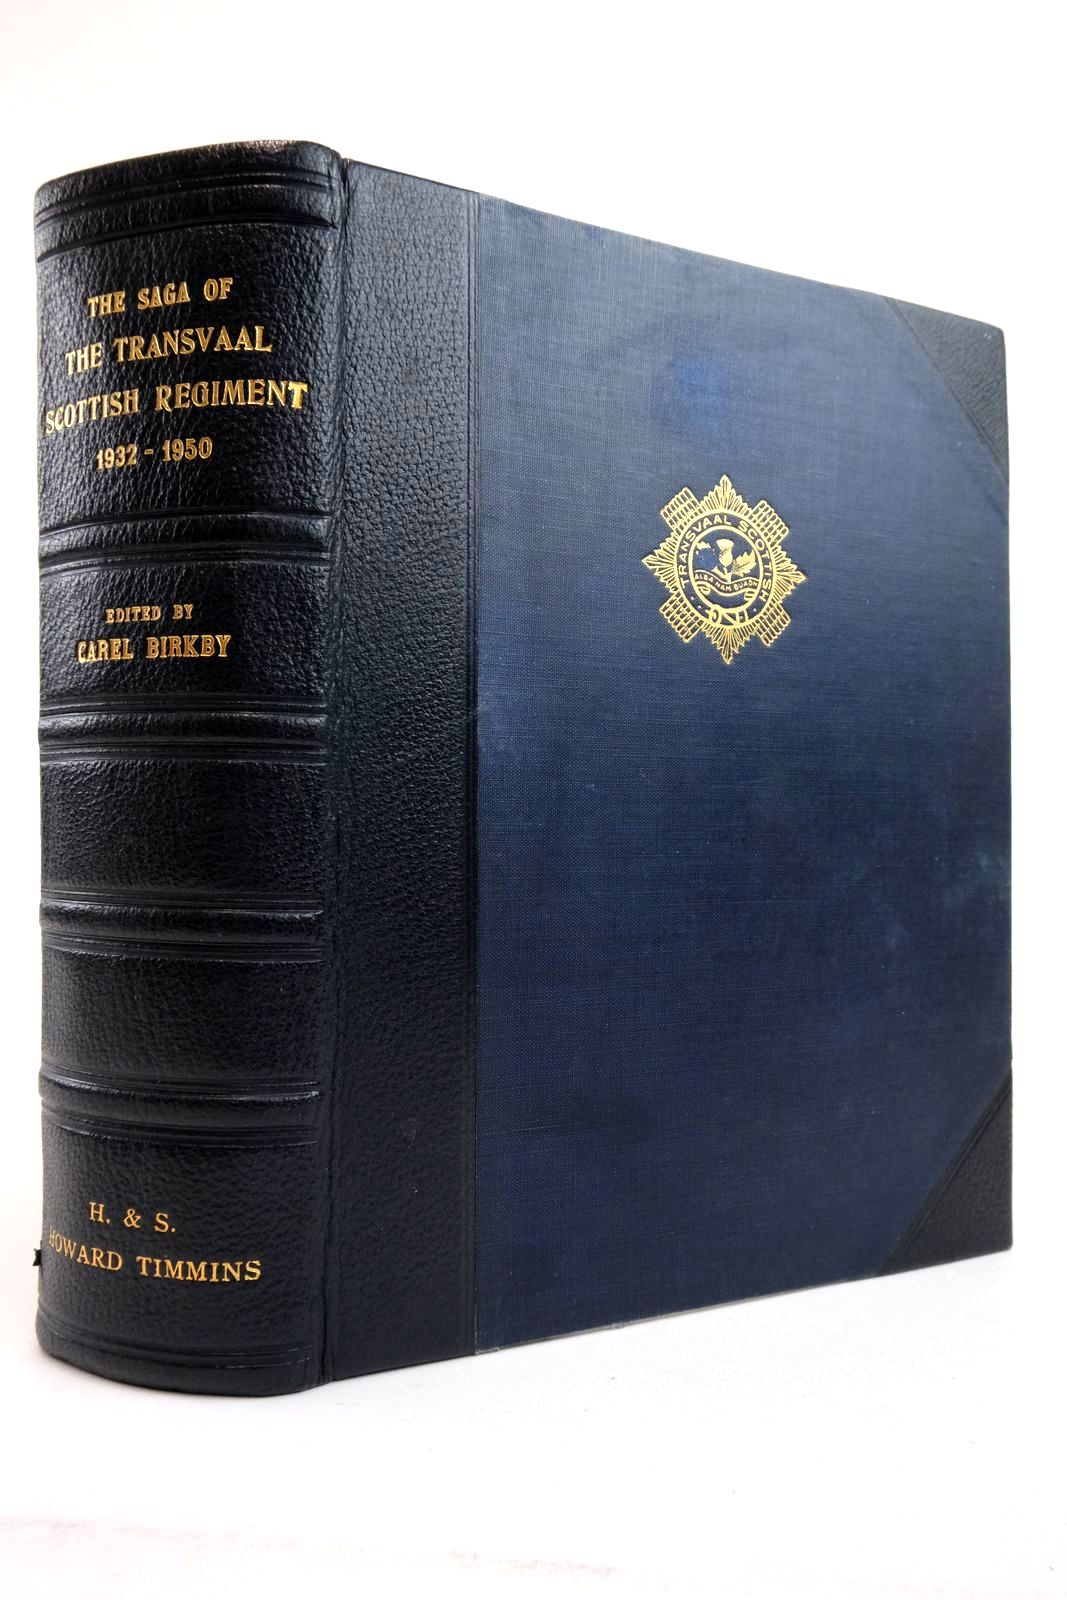 Photo of THE SAGA OF THE TRANSVAAL SCOTTISH REGIMENT 1932-1950- Stock Number: 2135410